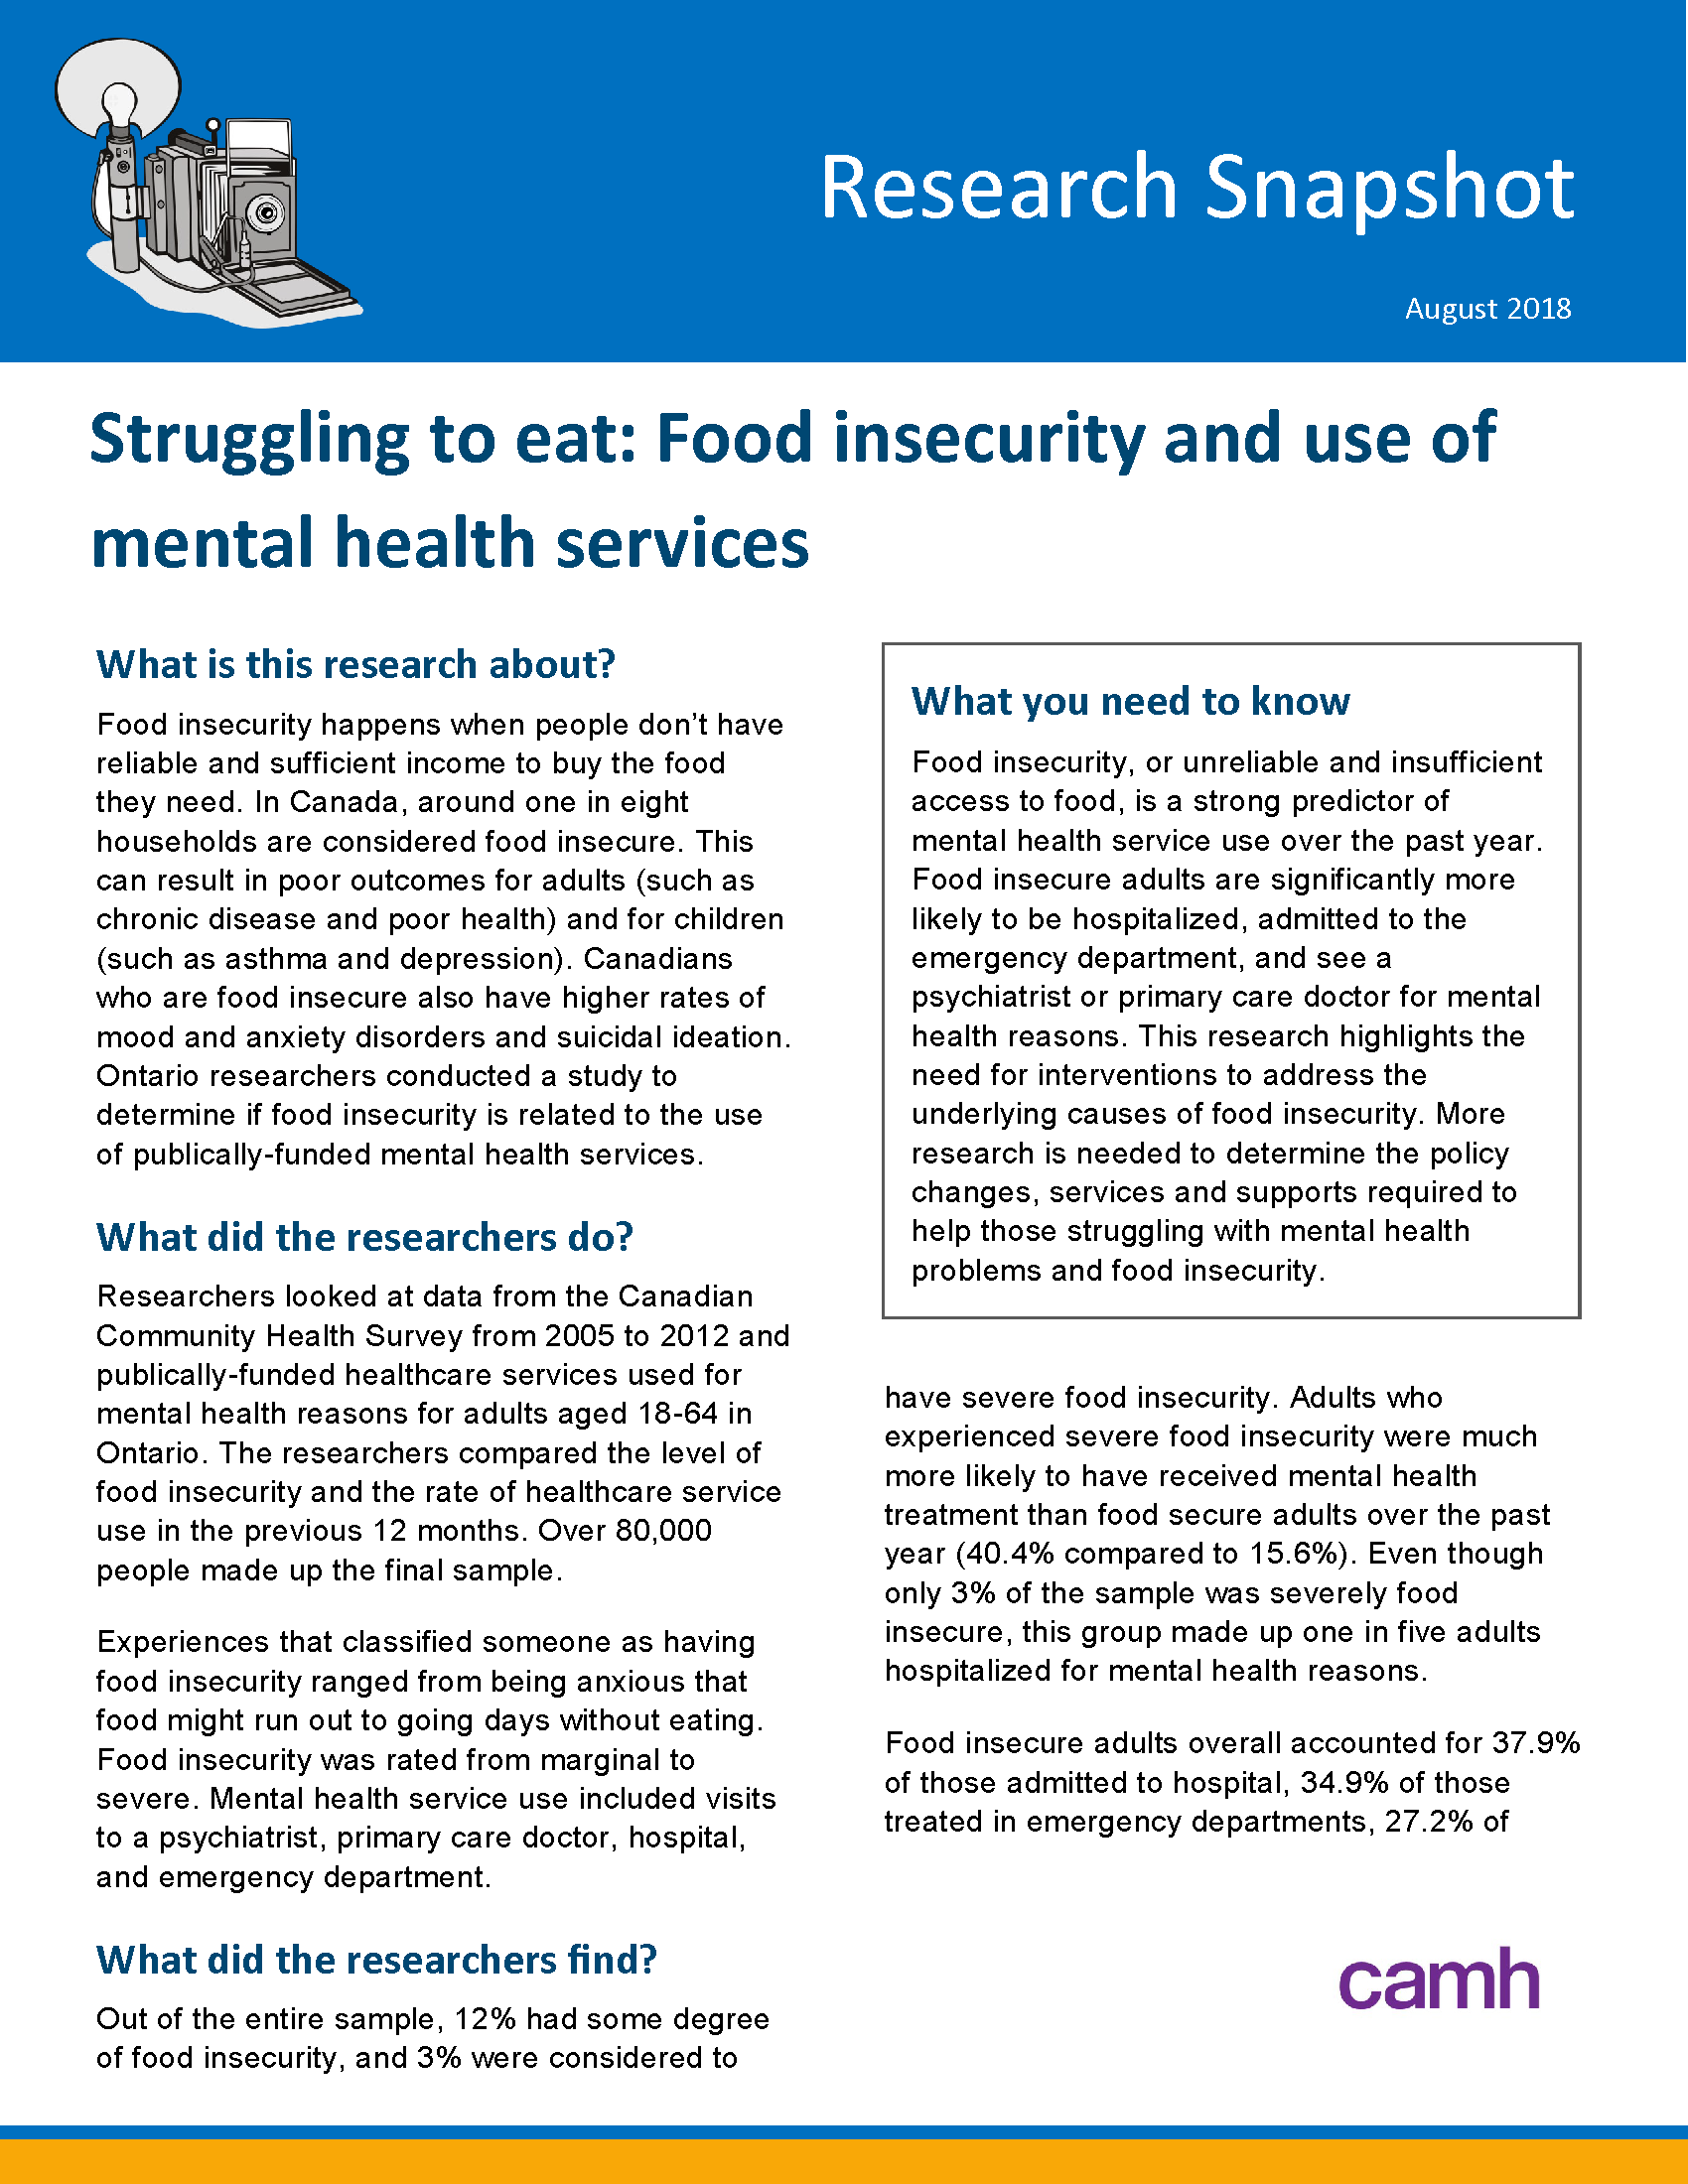 food insecurity and mental health services page 1